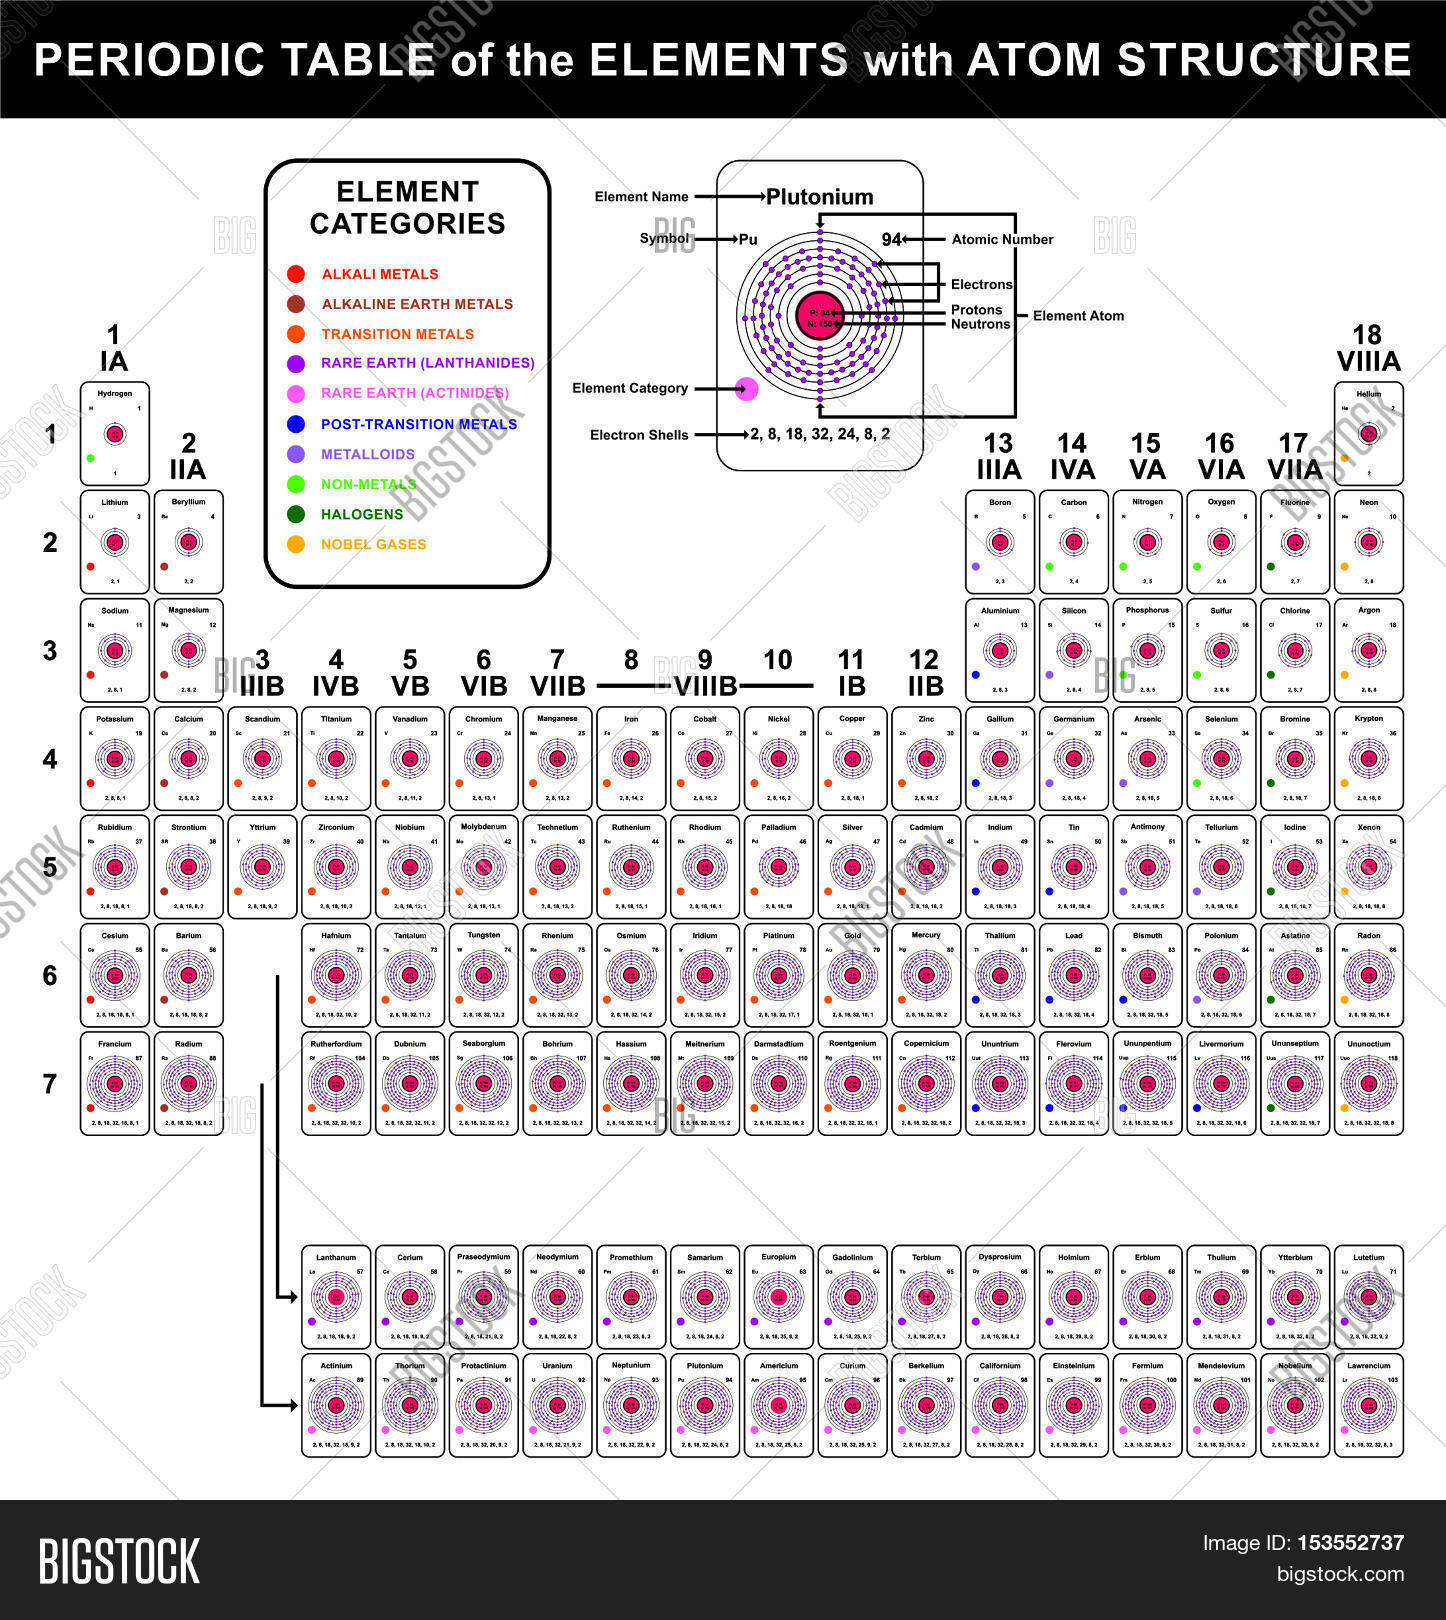 Periodic table image photo free trial bigstock periodic table of the elements with atom structure all elements atoms with distribution of electrons create a lightbox urtaz Choice Image